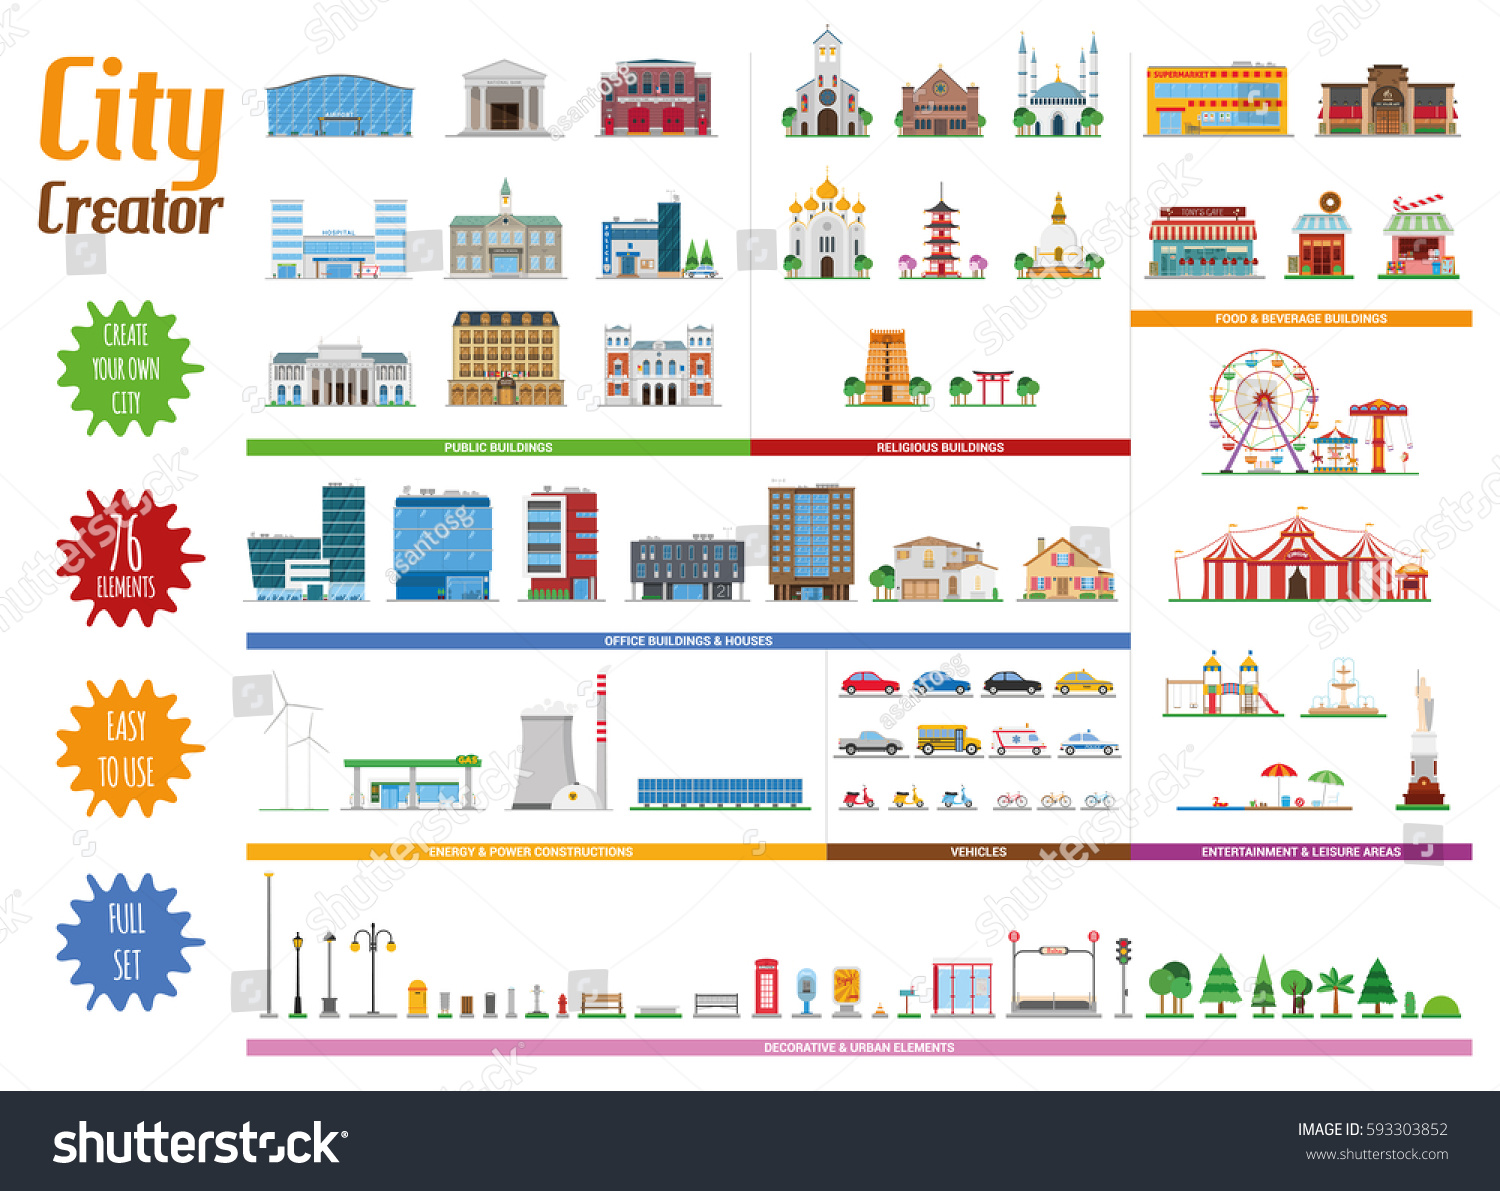 City Creator Full Collection 76 Elements Stock Vector